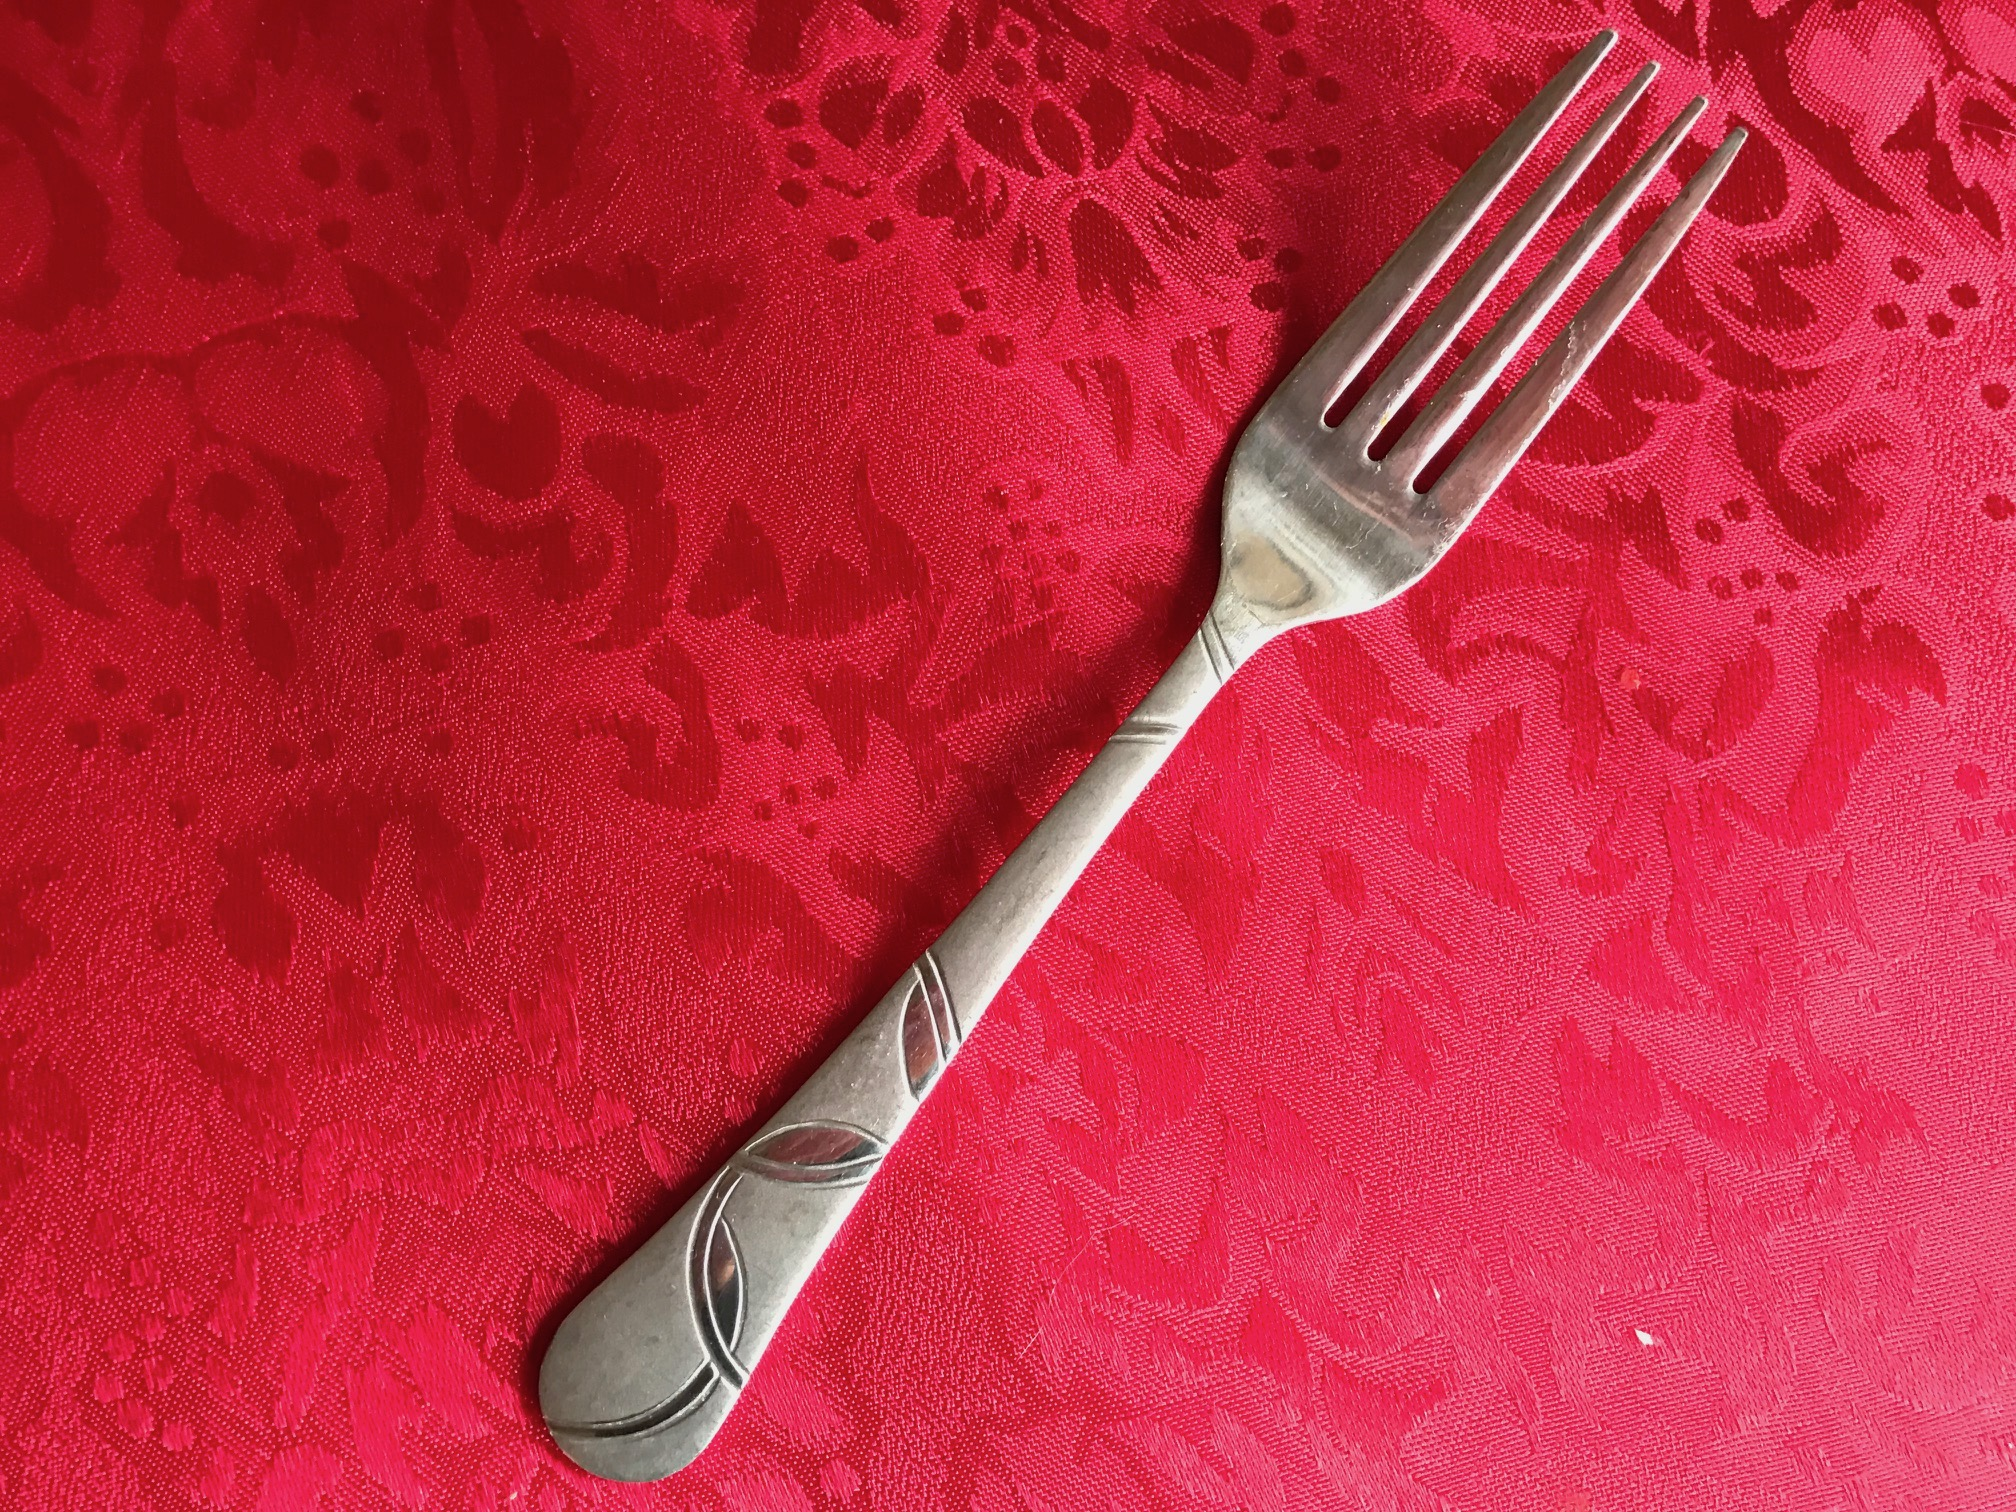 Cambridge Design Stainless Steel Fork, Made In China: Lead Free